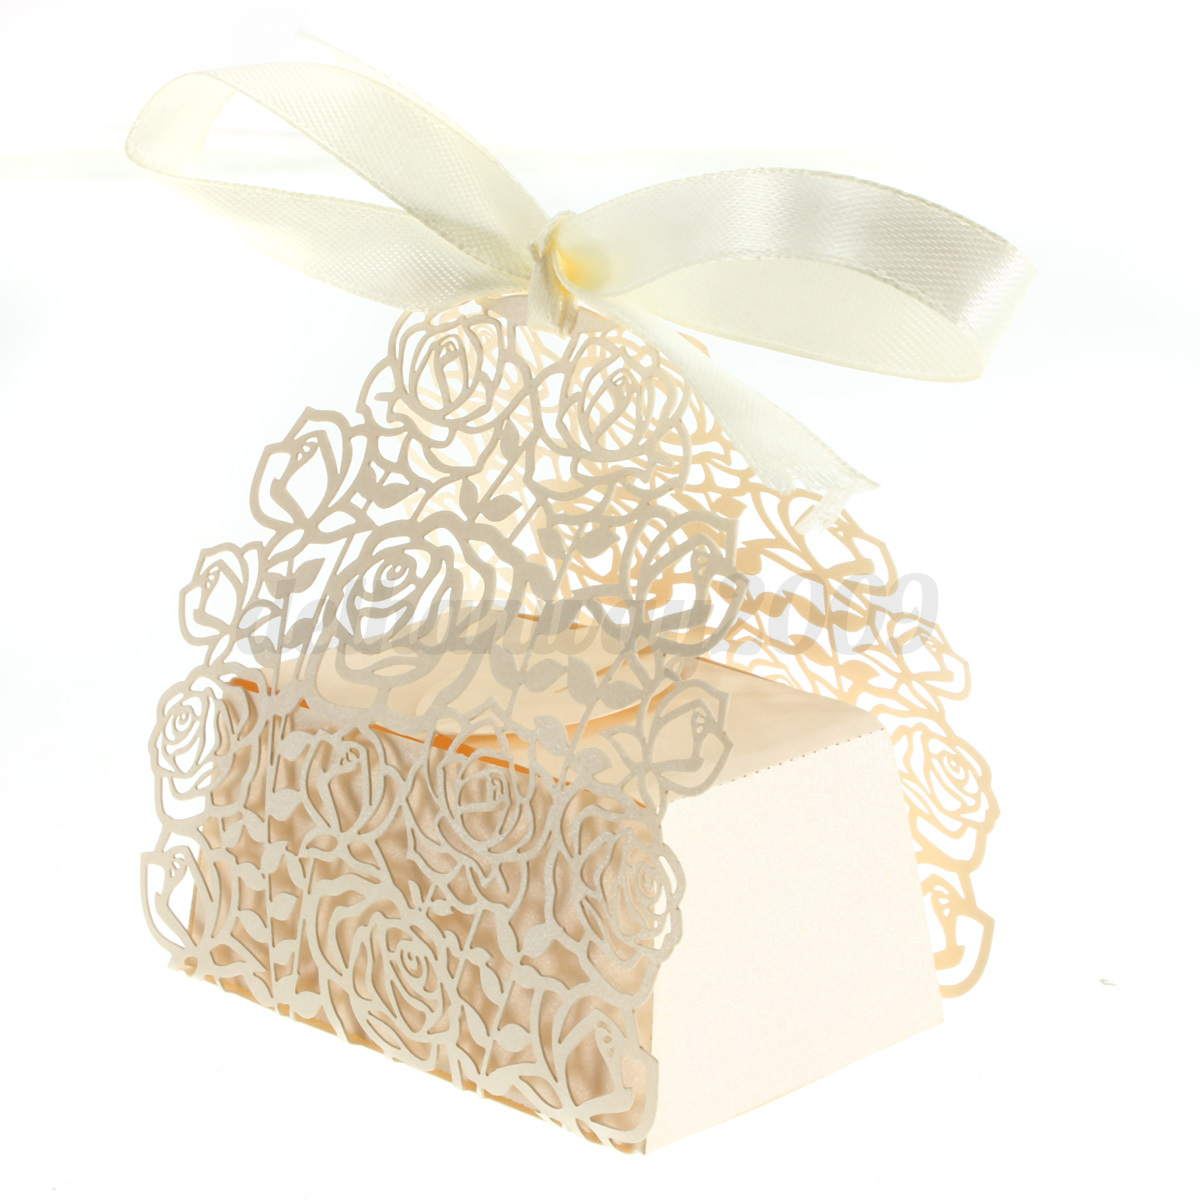 10 100PCS Luxury Wedding Party Xmas Sweets Cake Candy Gift Favour Favors Boxes